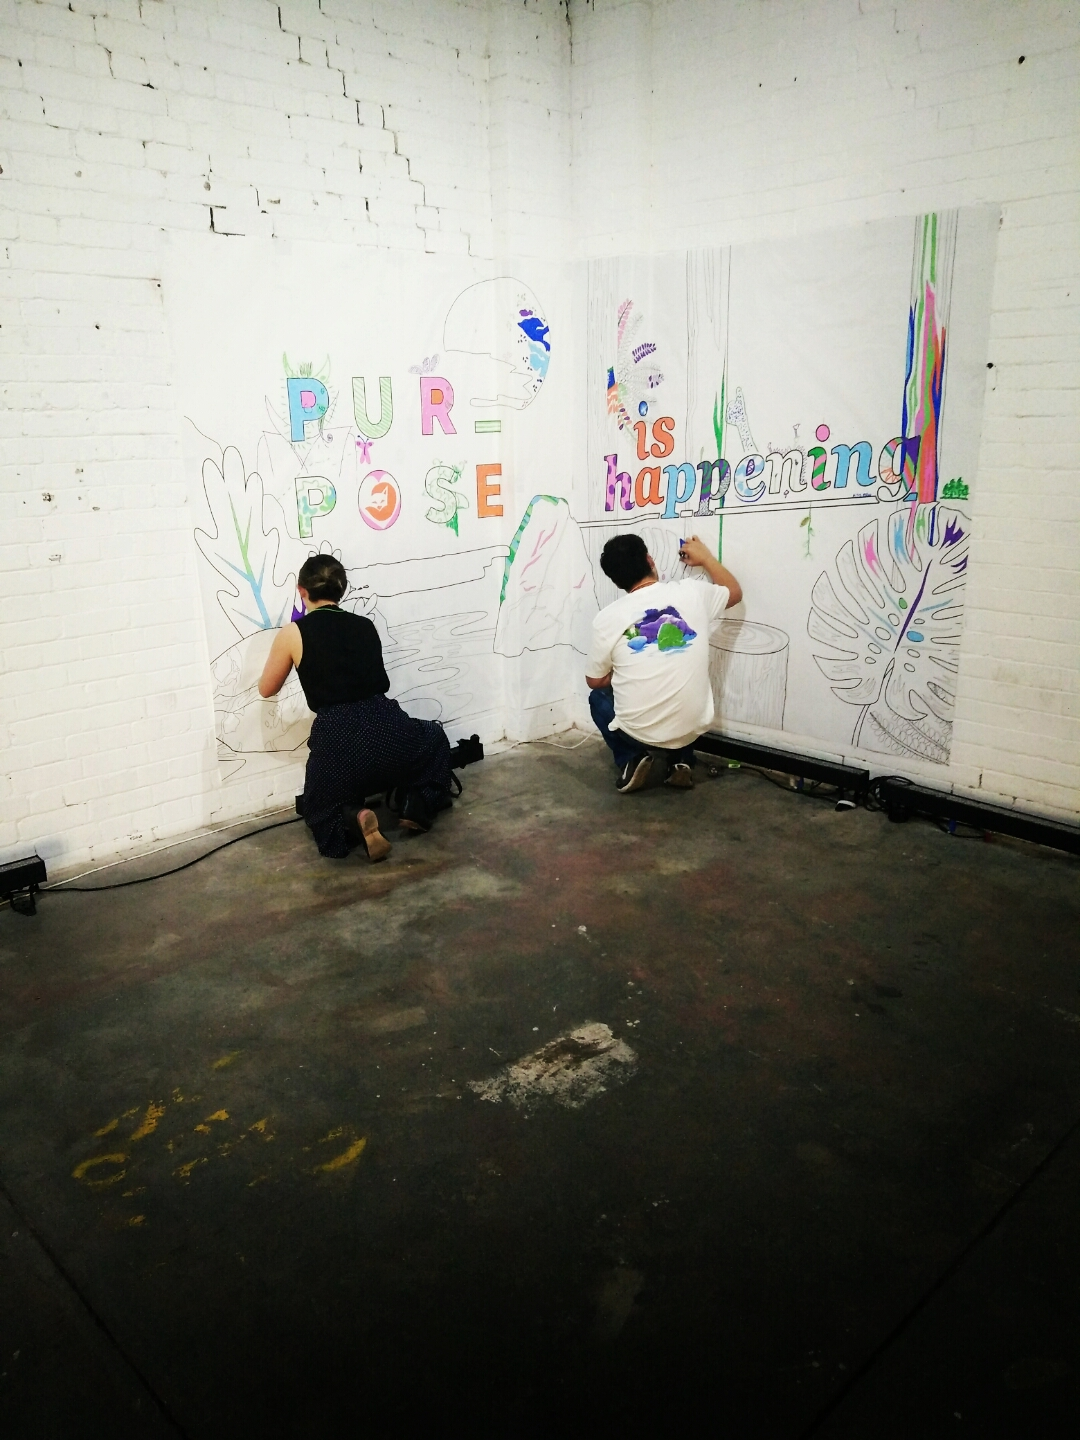 Colouring-in wall